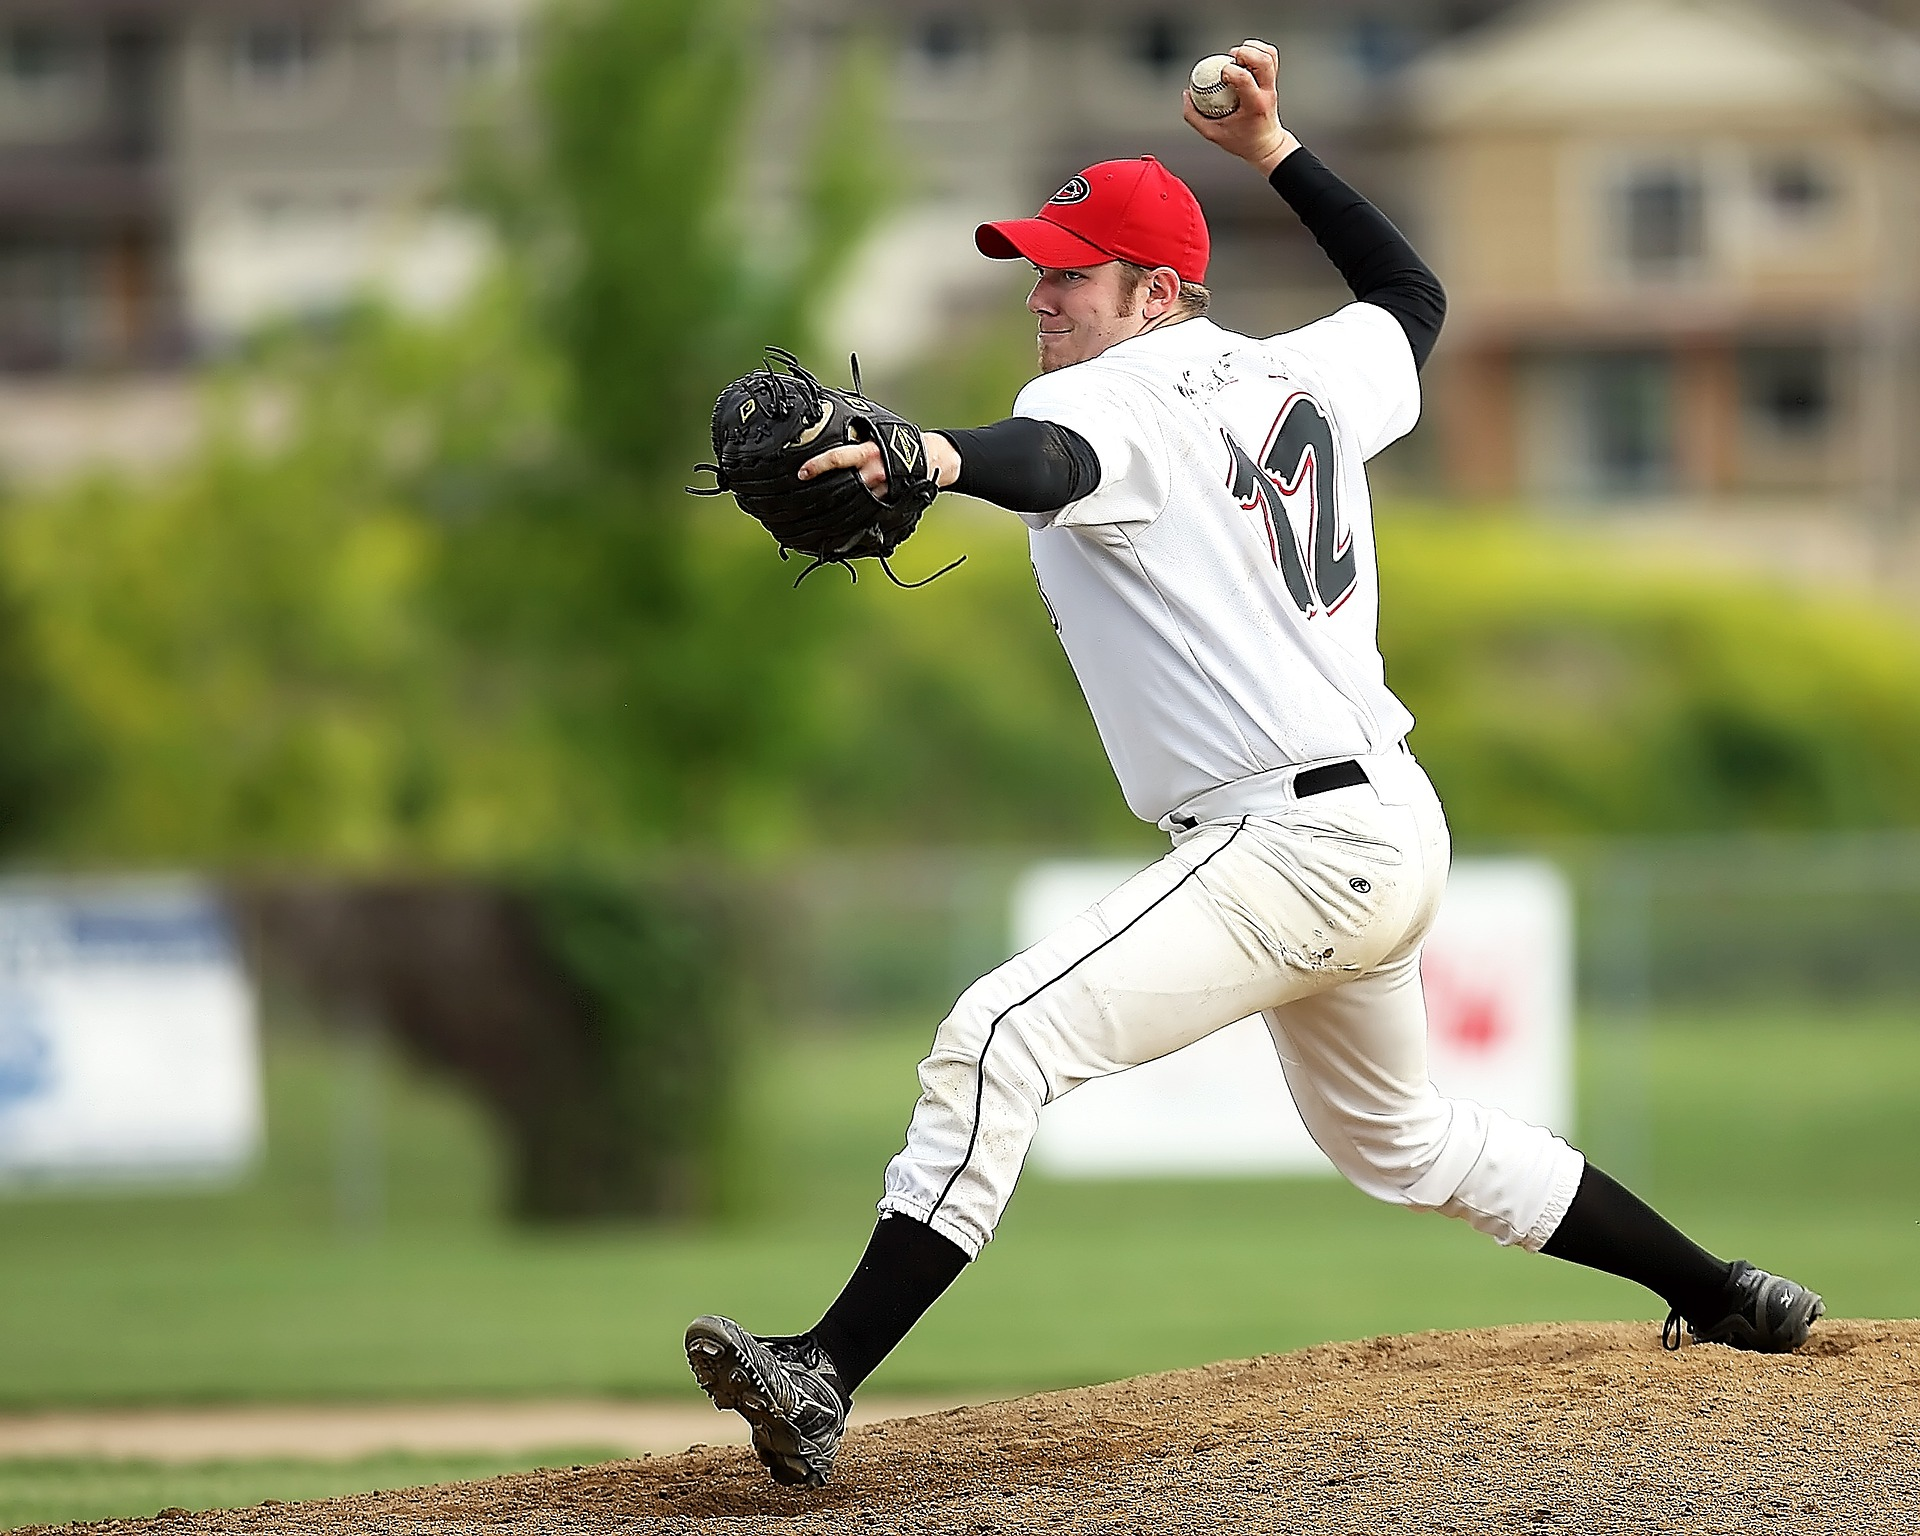 Baseball pitcher in white clothes and red hat just about to pitch a ball to the batter: Types of Baseball Gloves [Mindfusebaseball.com]